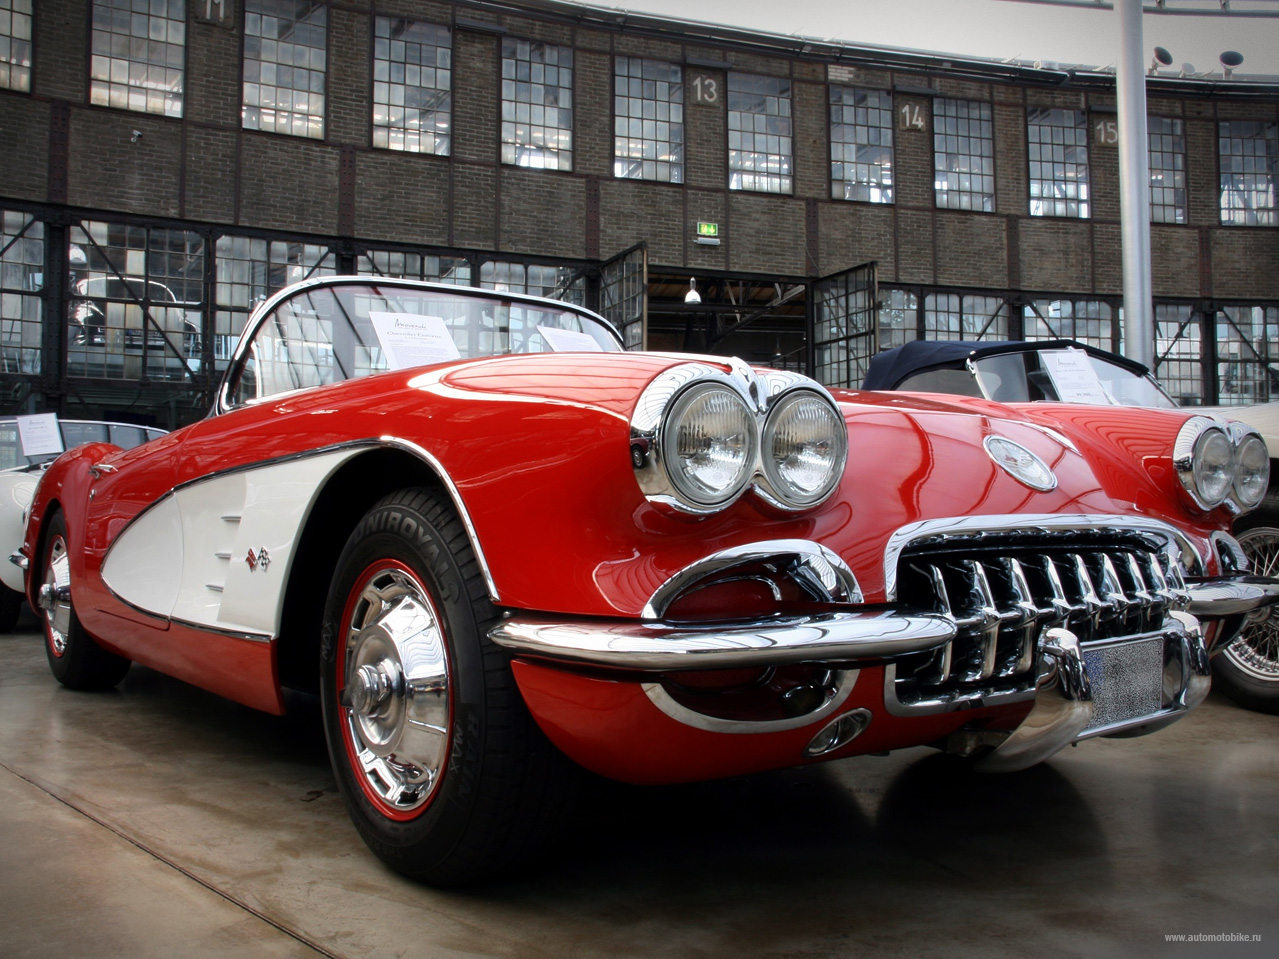 Chevrolet Corvette 4.6 1962 photo - 5